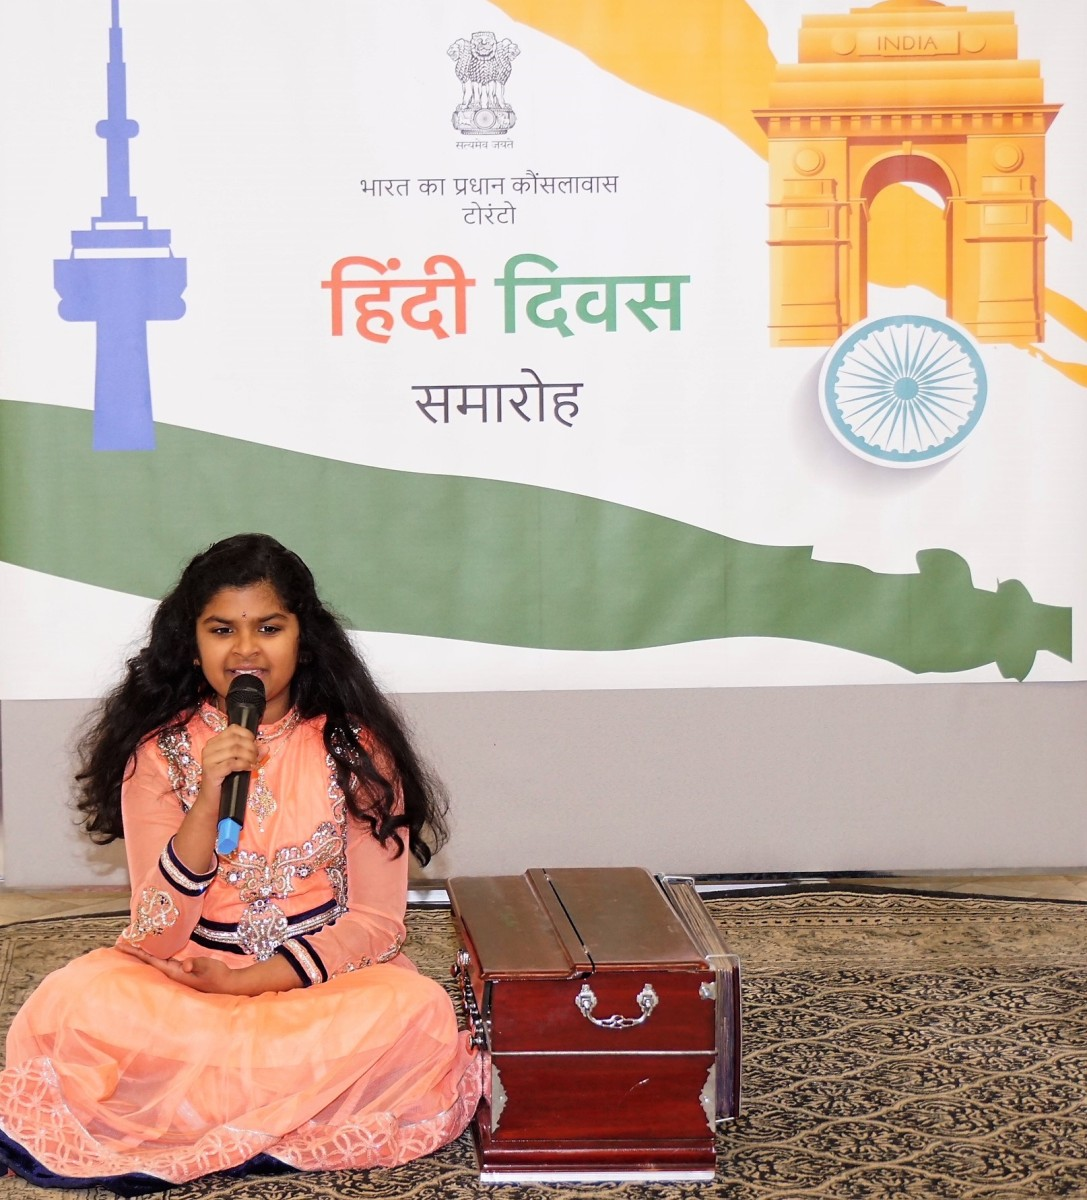 """Vishwa Hindi Divas"" (World Hindi Day) celebrated at the Indian Consulate, Toronto"